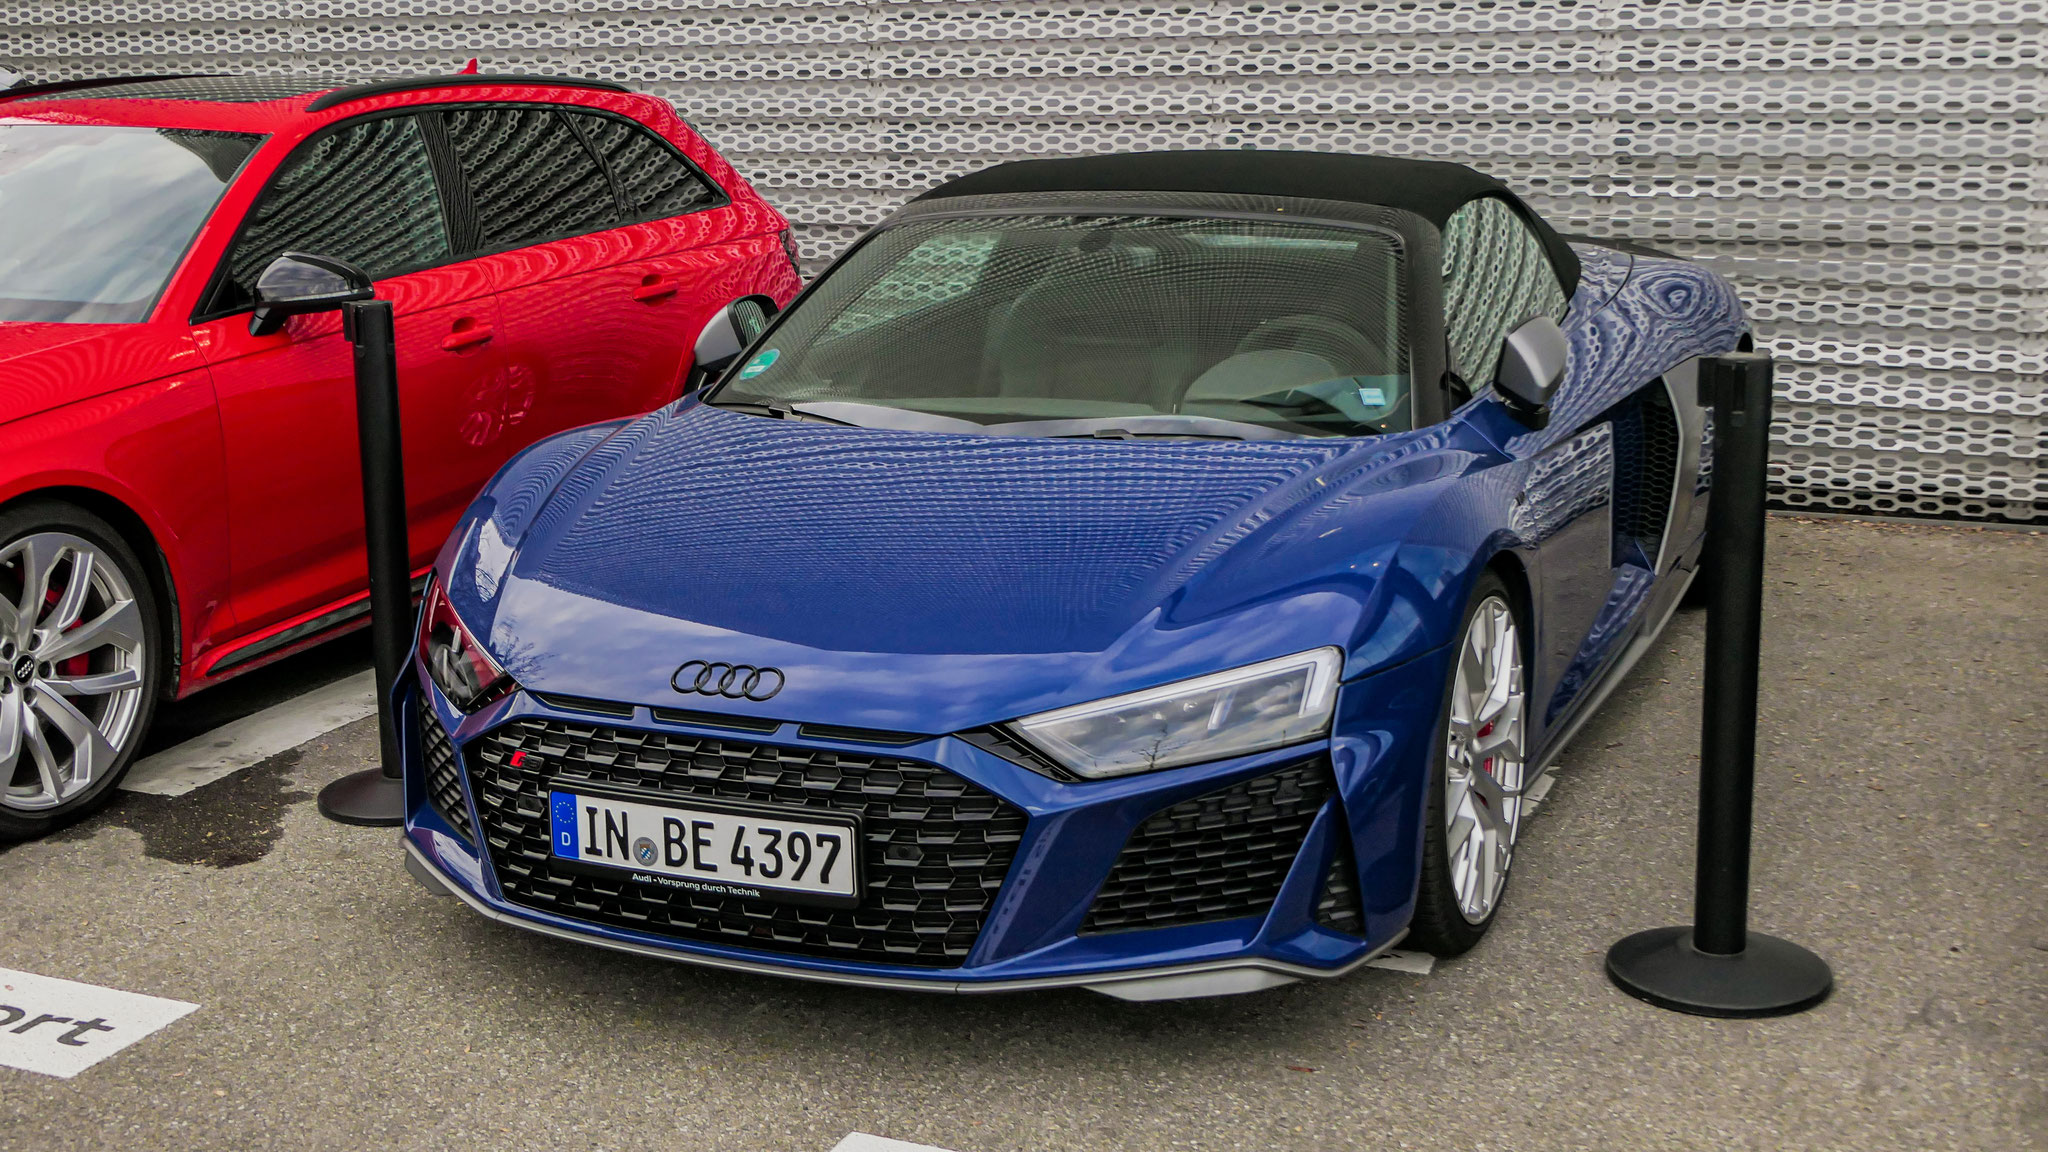 Audi R8 V10 Spyder - IN-BE-4397